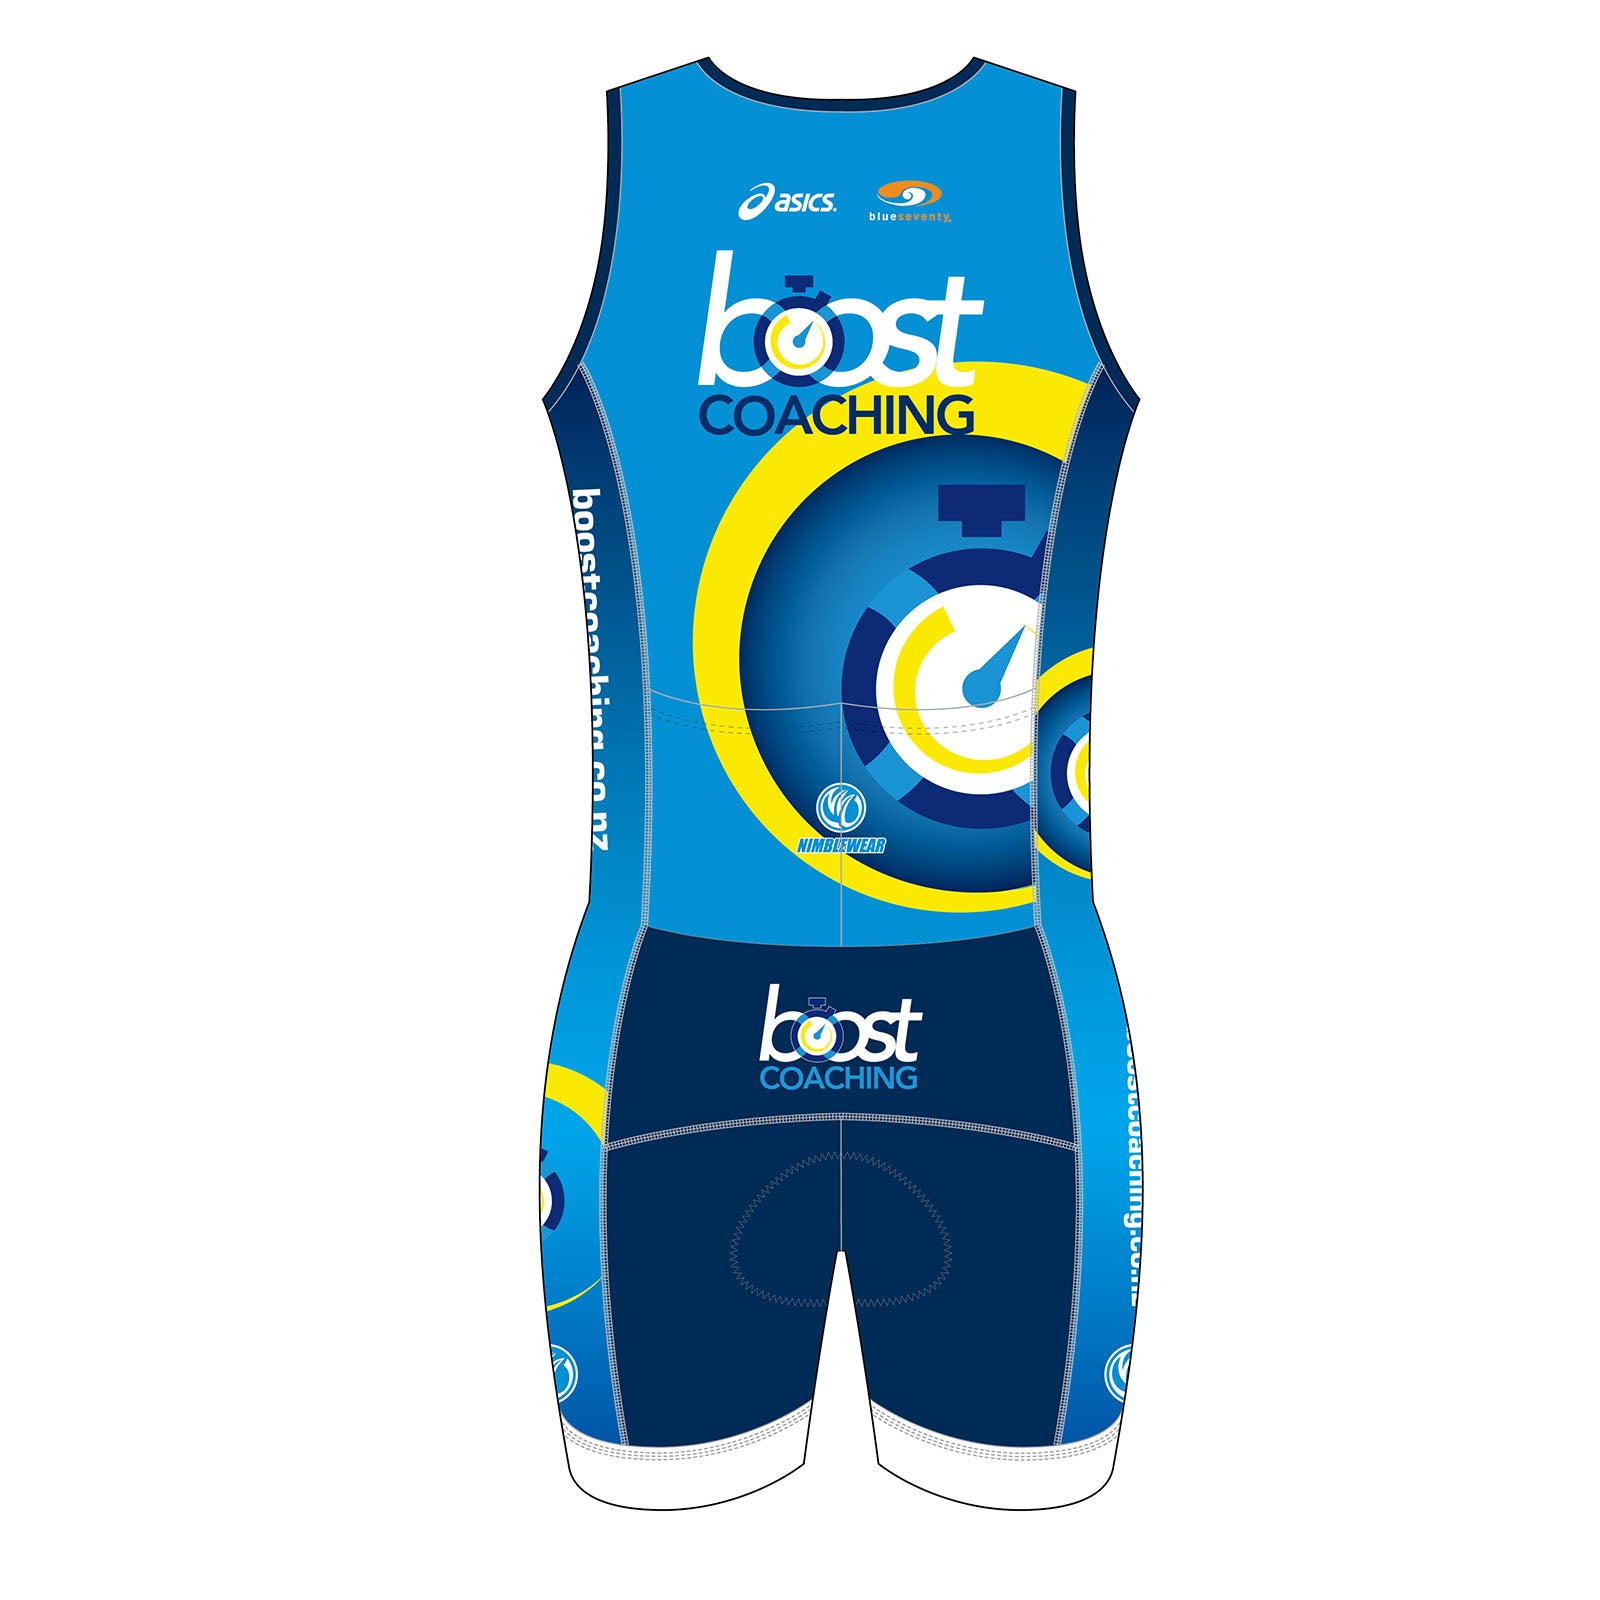 Boost Coaching GOLD Sleeveless Tri Suits